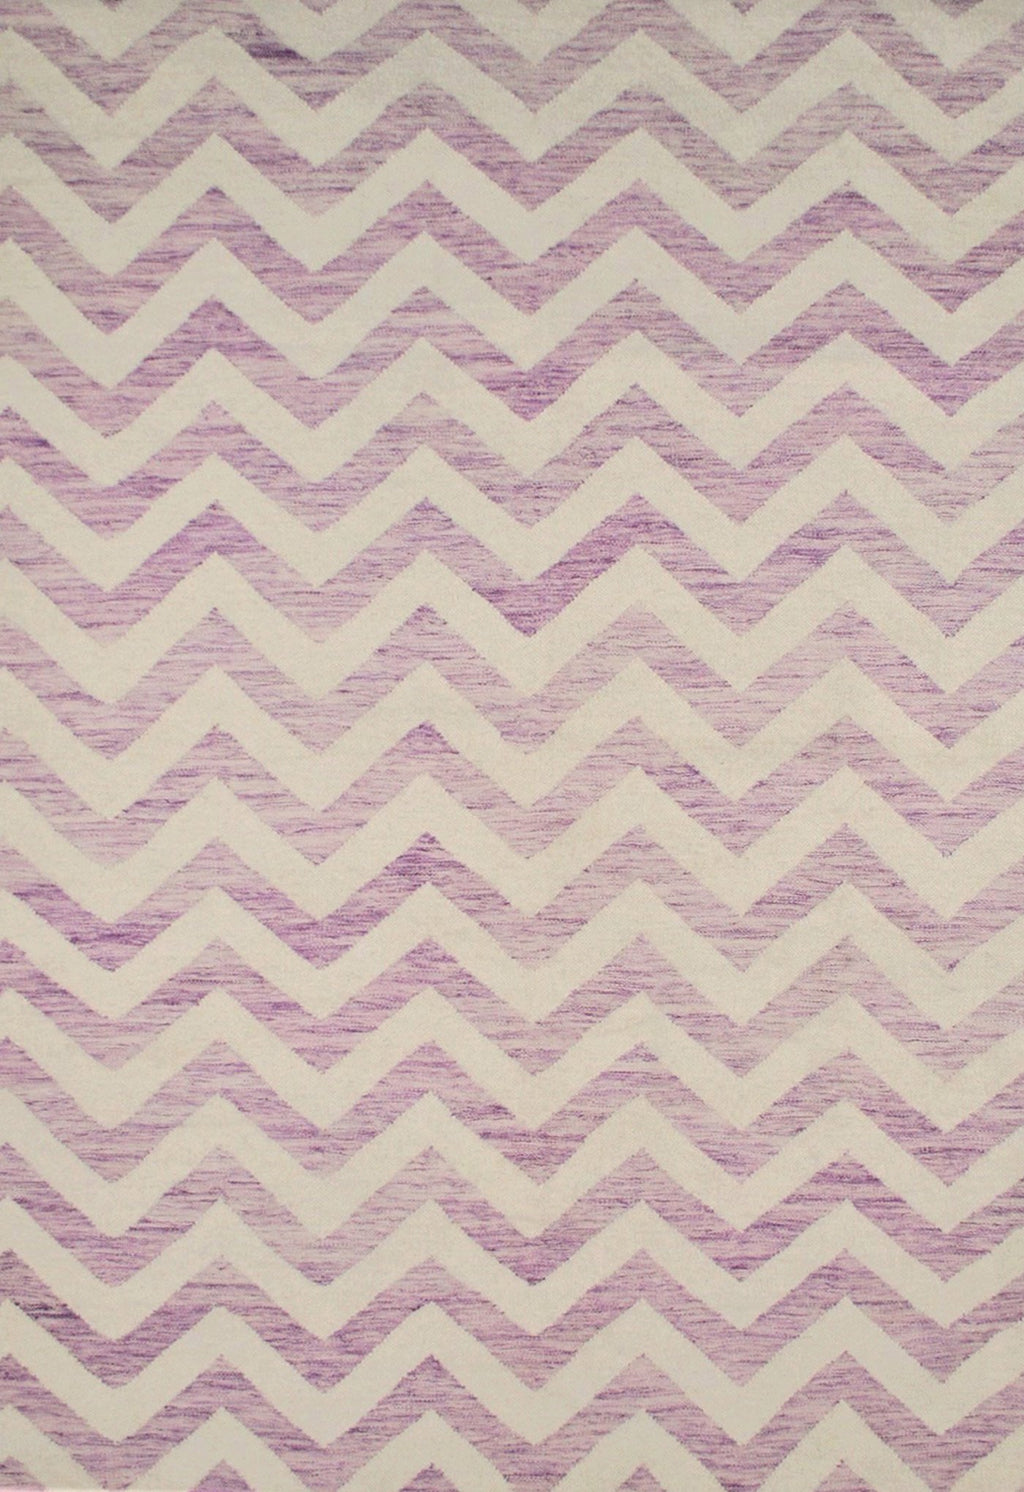 purple zig zag design rug in contemporary style